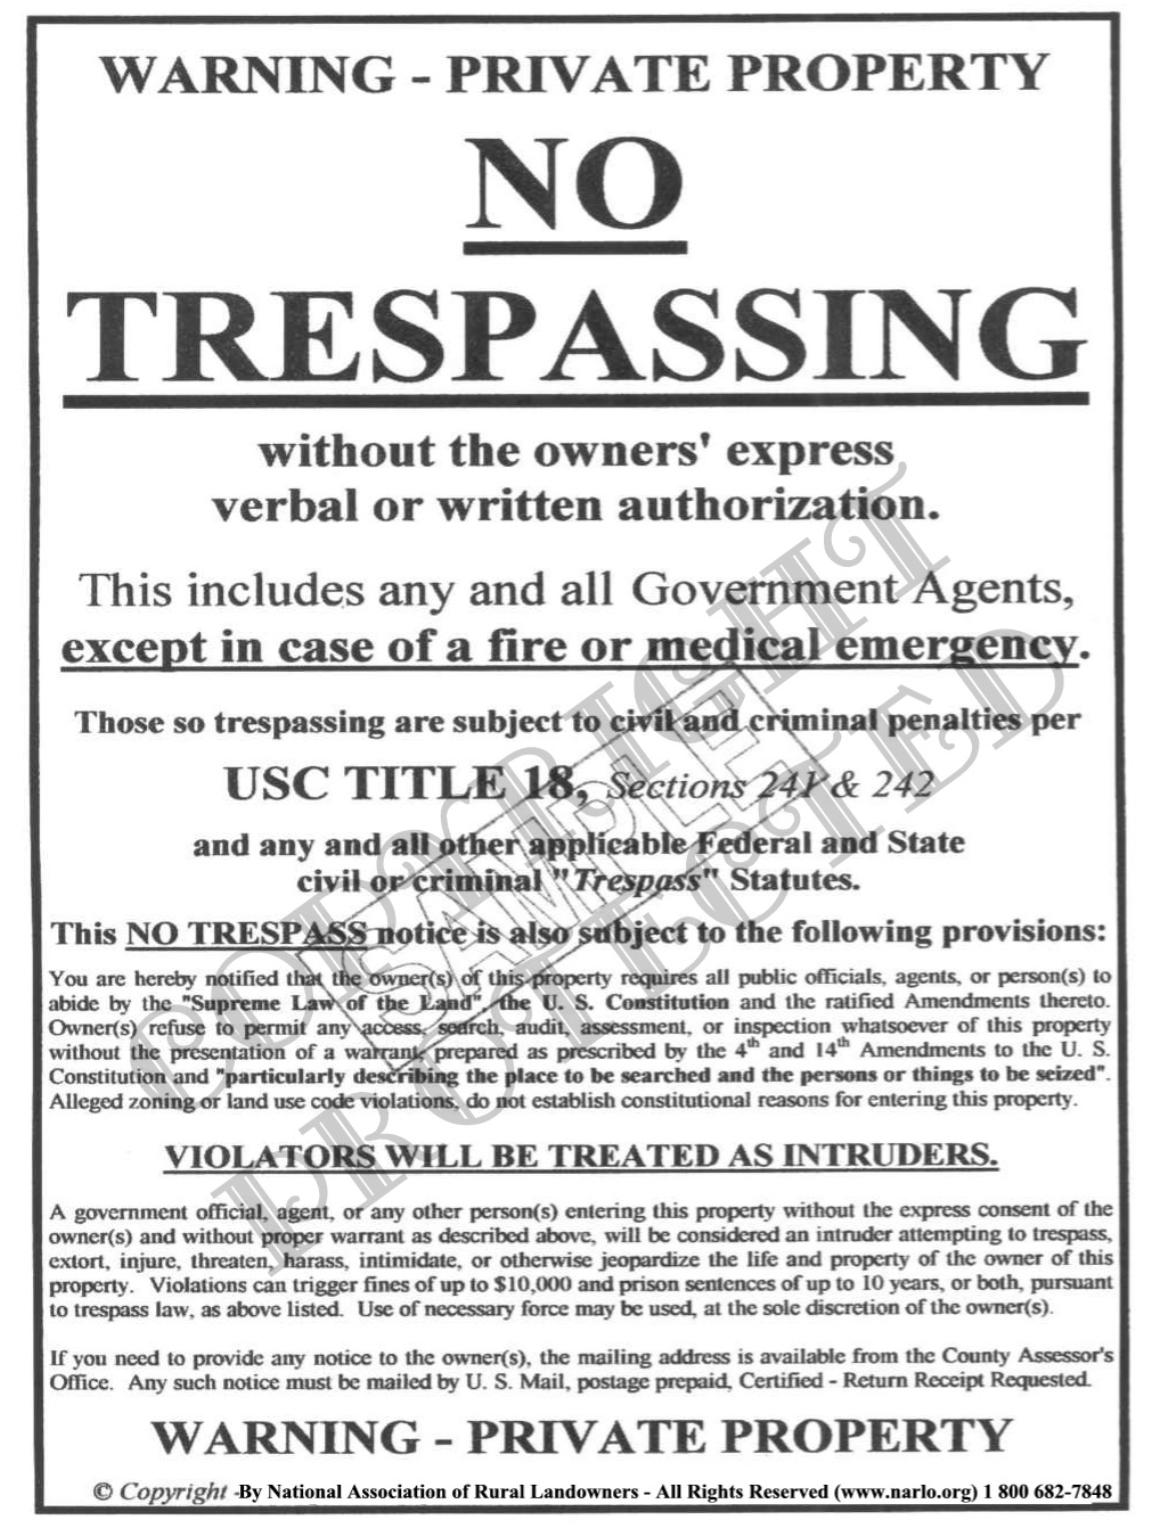 I have to write an essay on trespassing?